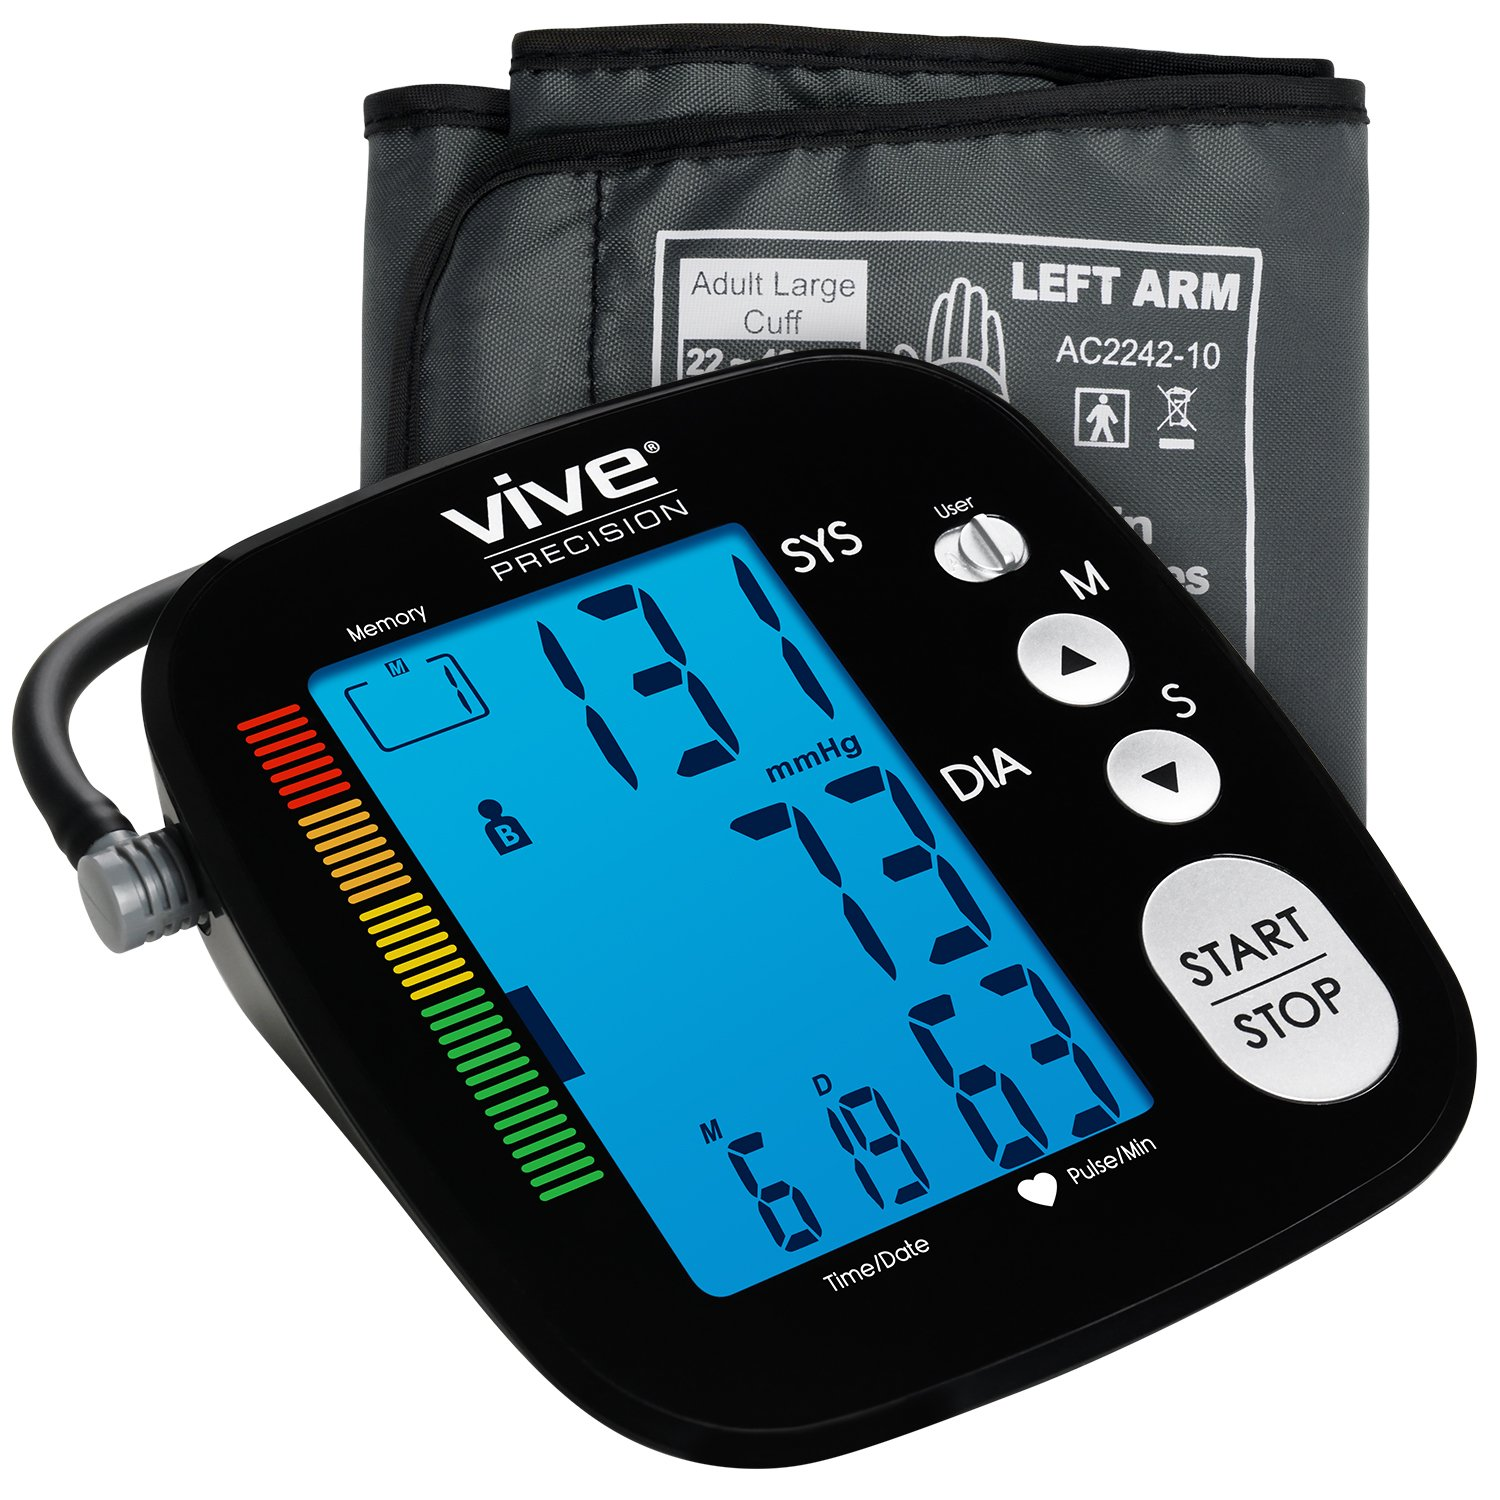 Blood Pressure Monitor by Vive Precision - Automatic Digital Upper Arm Cuff - Accurate, Portable and Perfect for Home Use - Electronic Meter Measures Pulse Rate - 1 Size Fits Most Cuff, Black